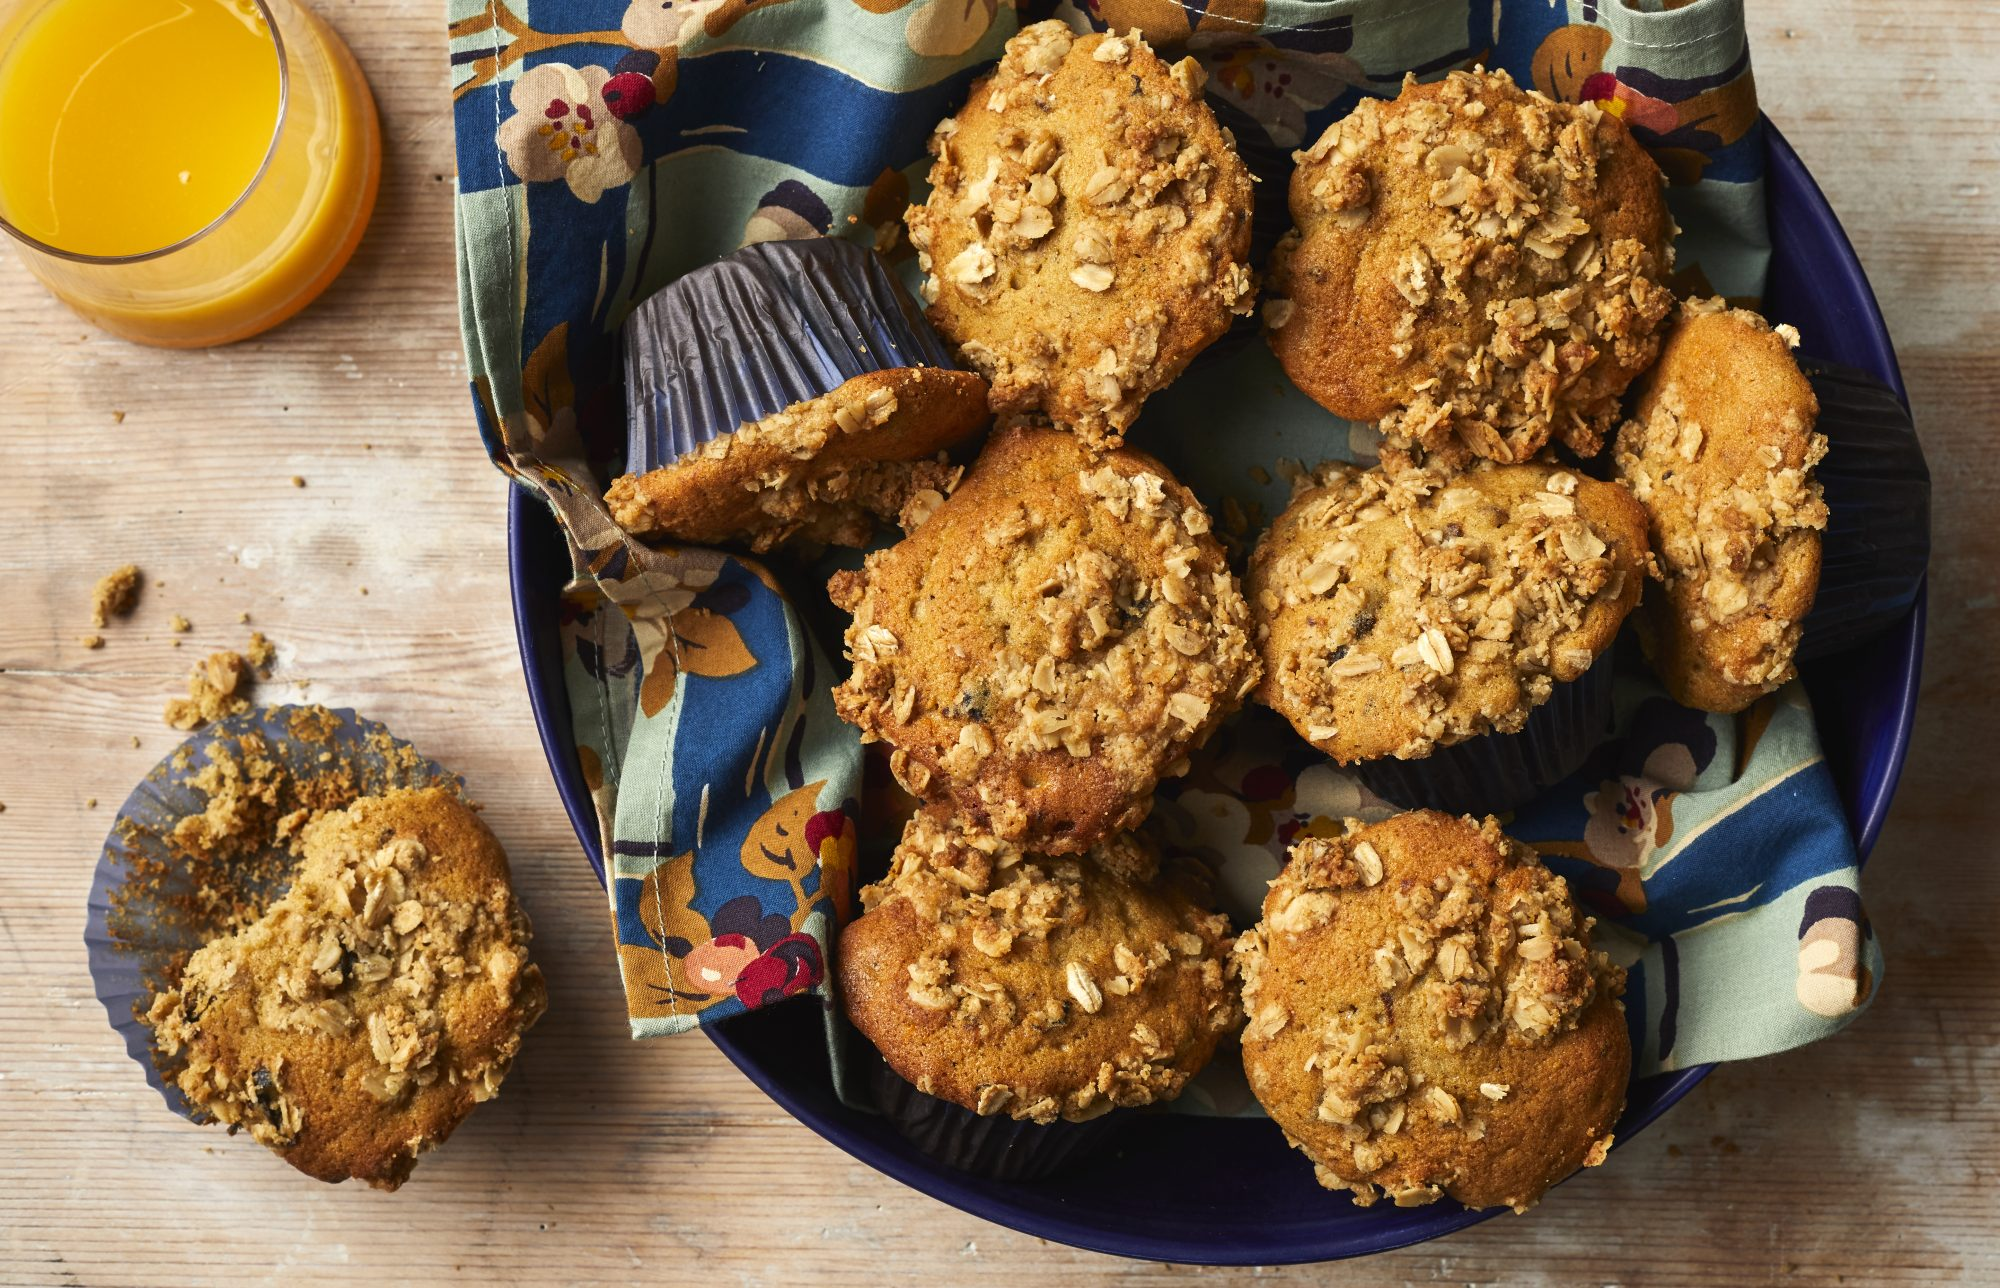 Toasted Oat and Prune Breakfast Muffins